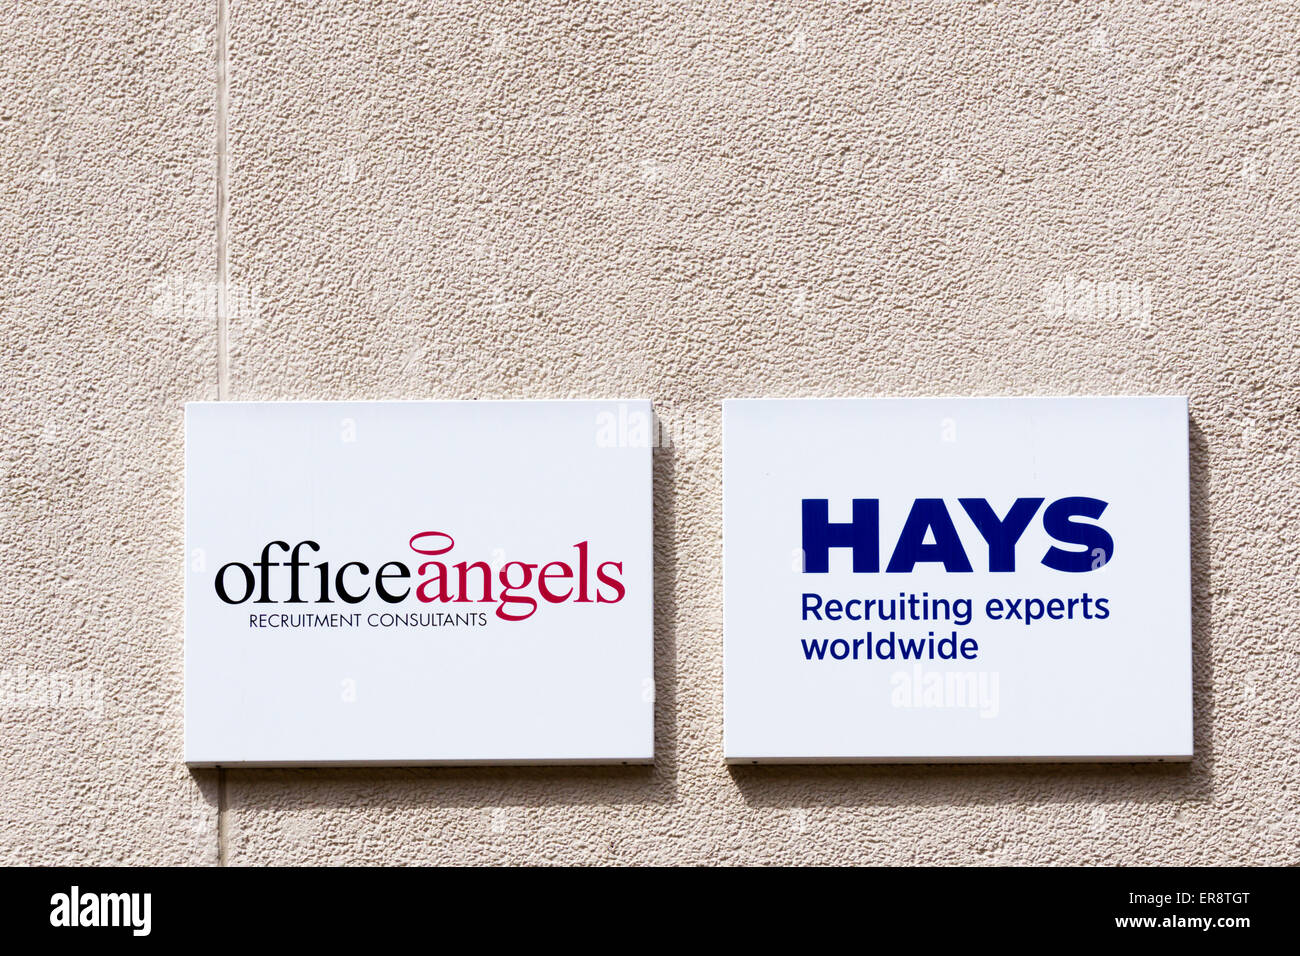 Signs for recruitment agencies, Office Angels and Hays. - Stock Image